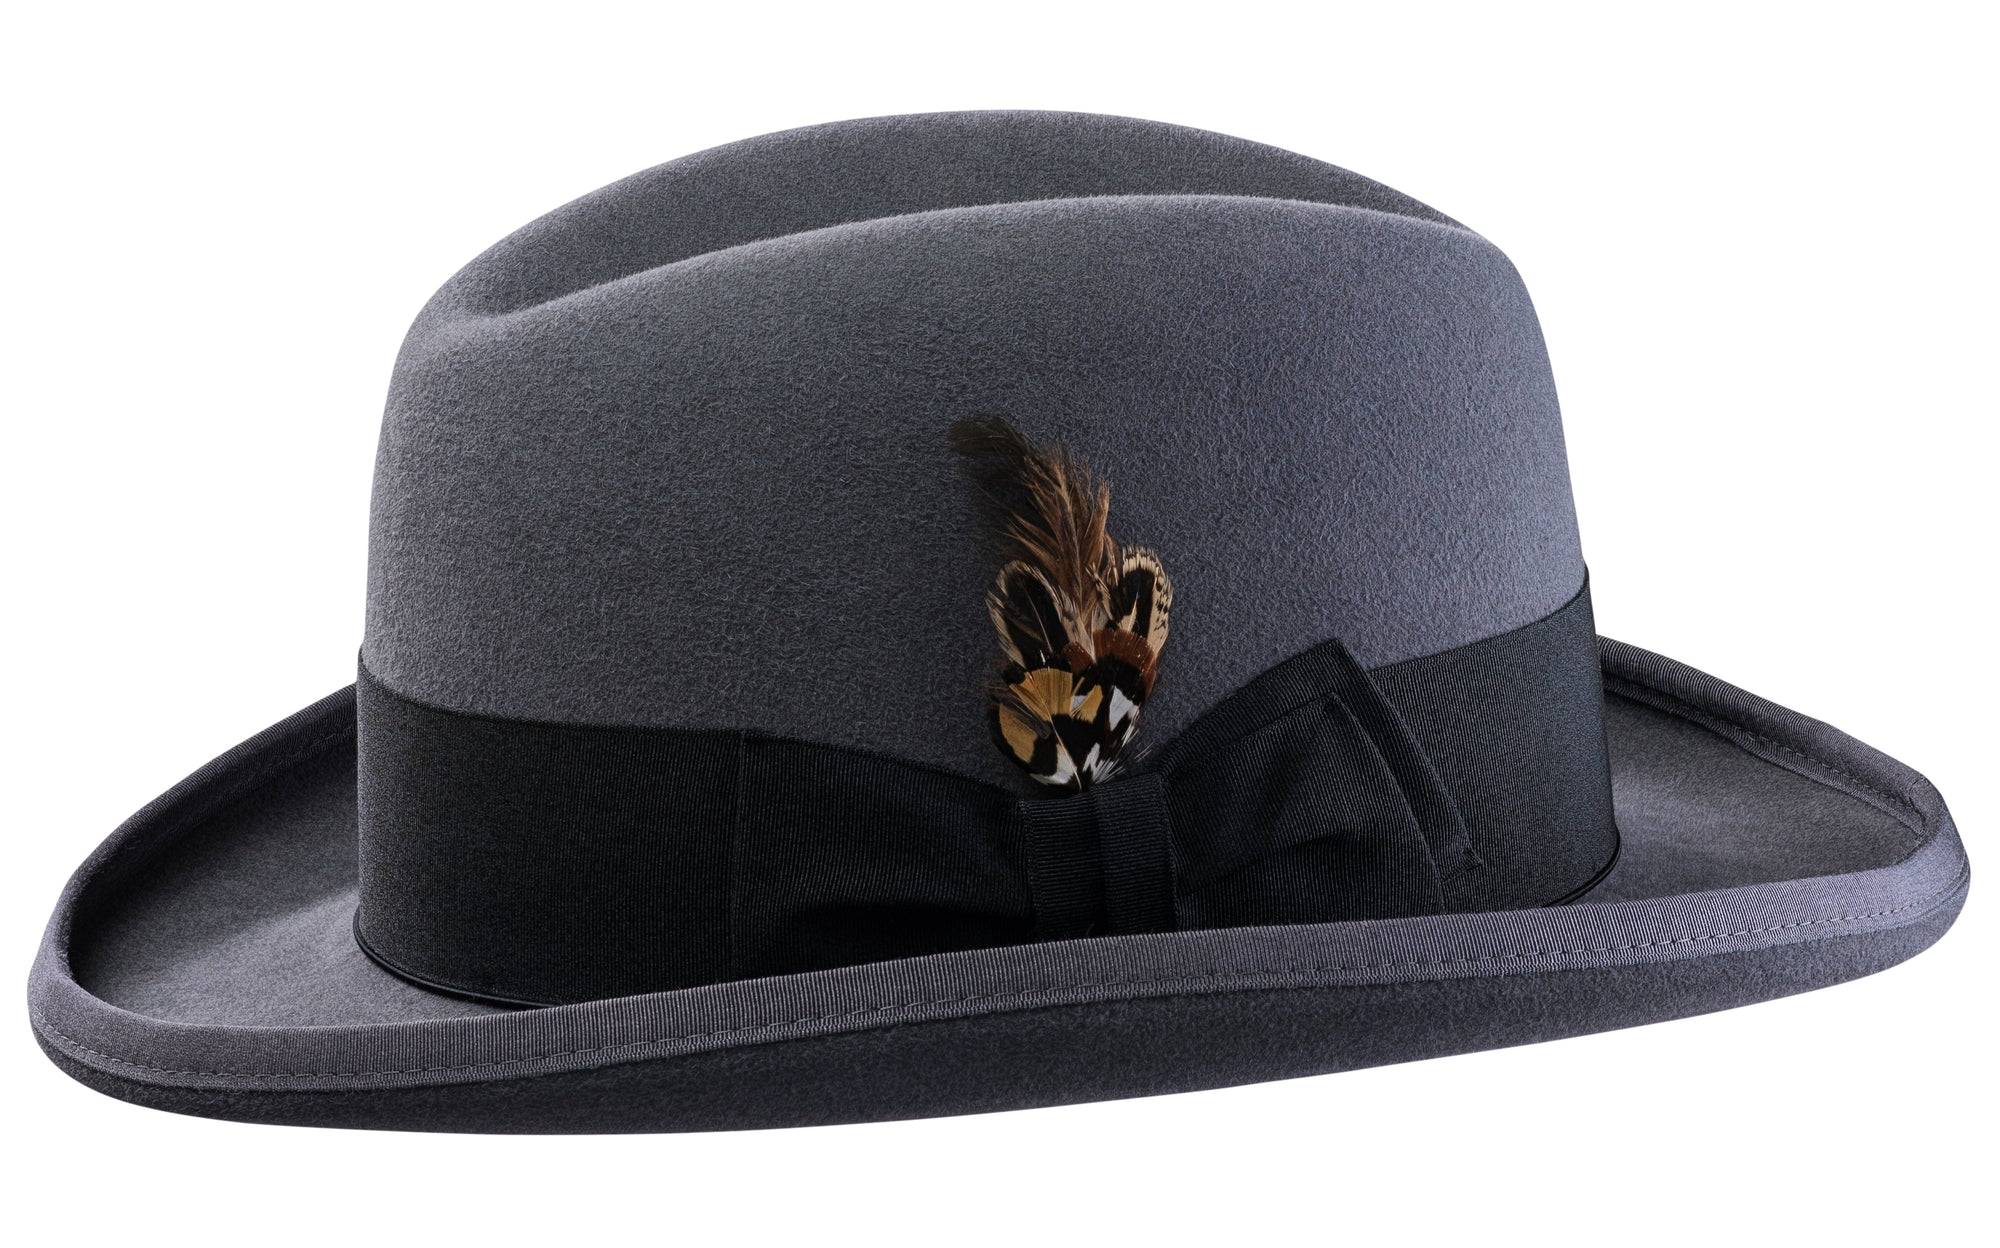 Alpha Godfather Homburg Classic Hat Formal Hat Selentino Hat Selentino Hats Men's traditional wool black homburg hat. alpha godfather homburg classic hat formal hat selentino hat selentino hats